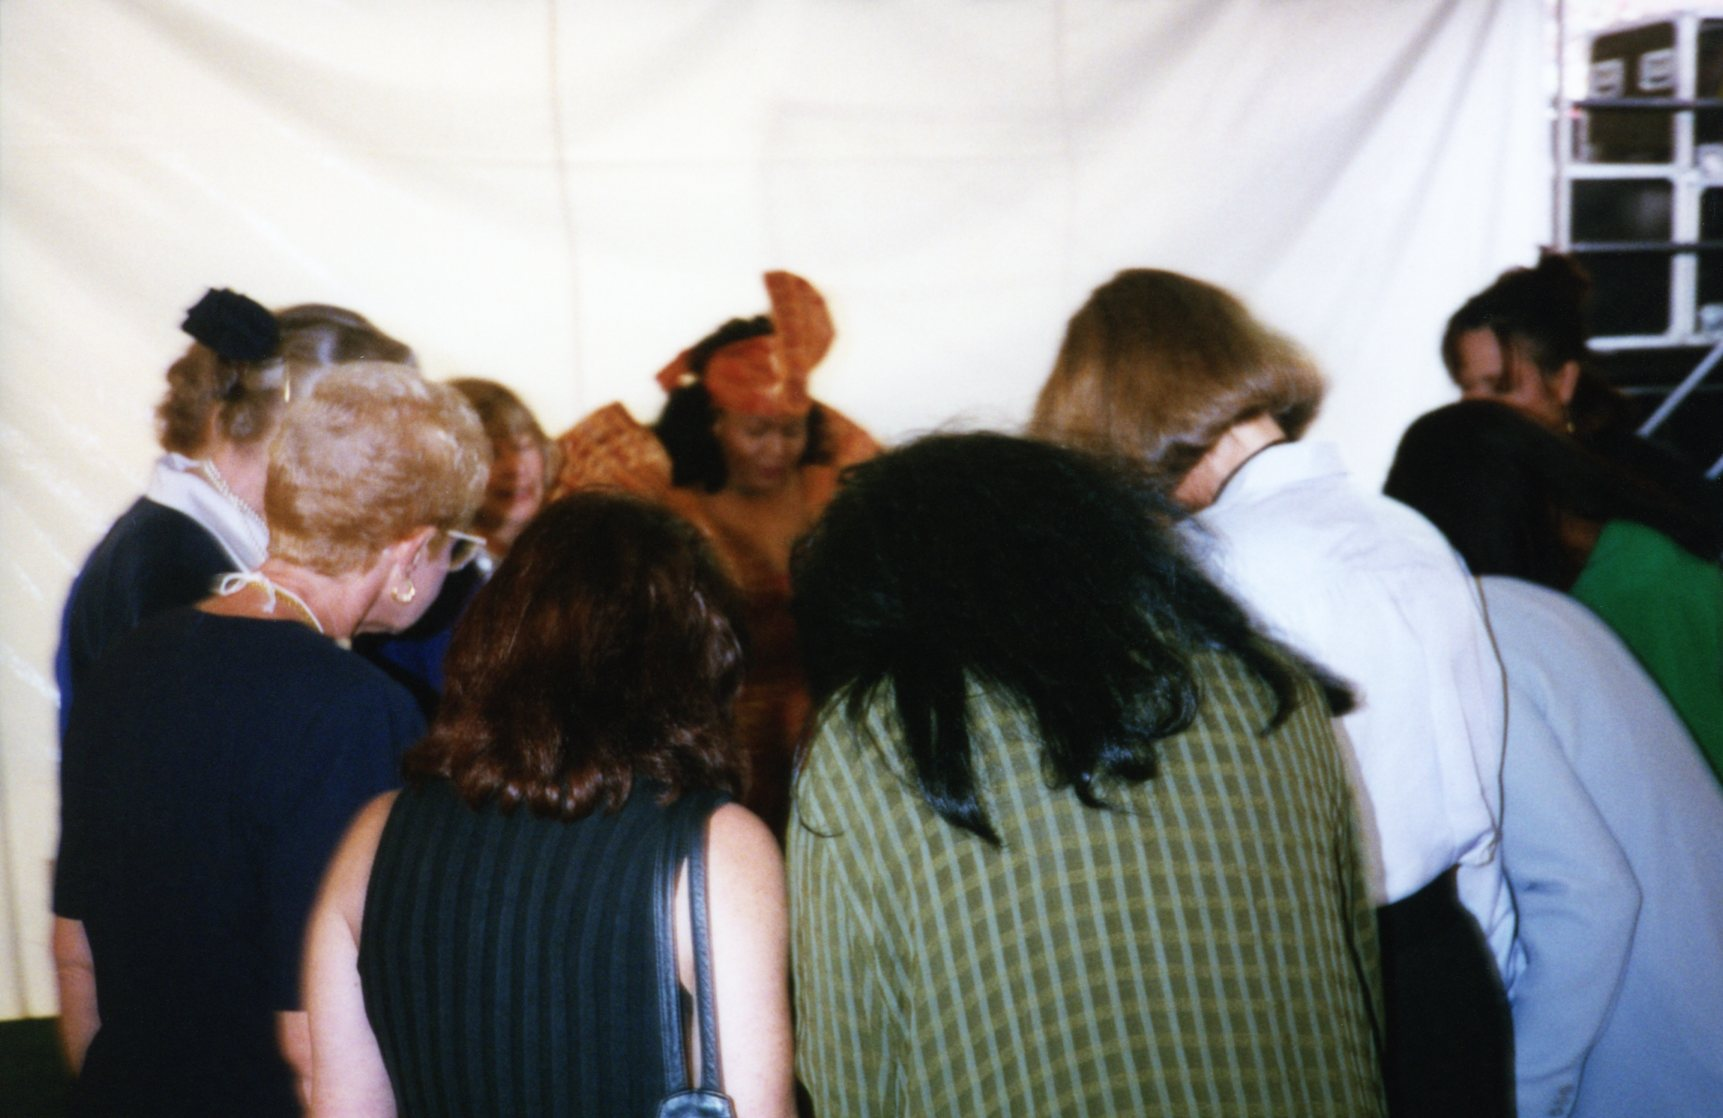 Women praying before the event